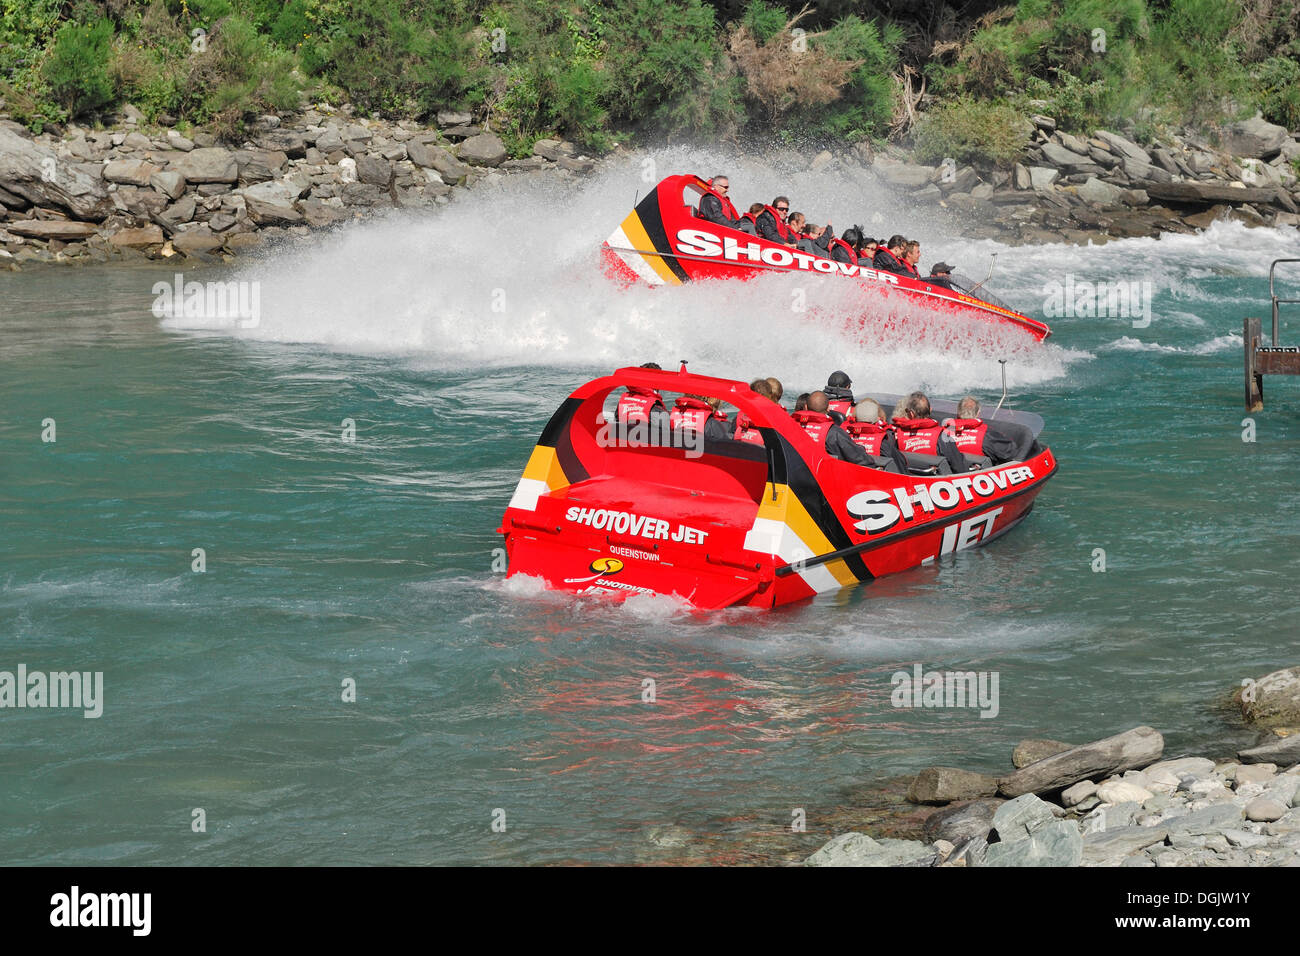 Jet boats, speed boats on the Shotover River, Queenstown, South Island, New Zealand - Stock Image